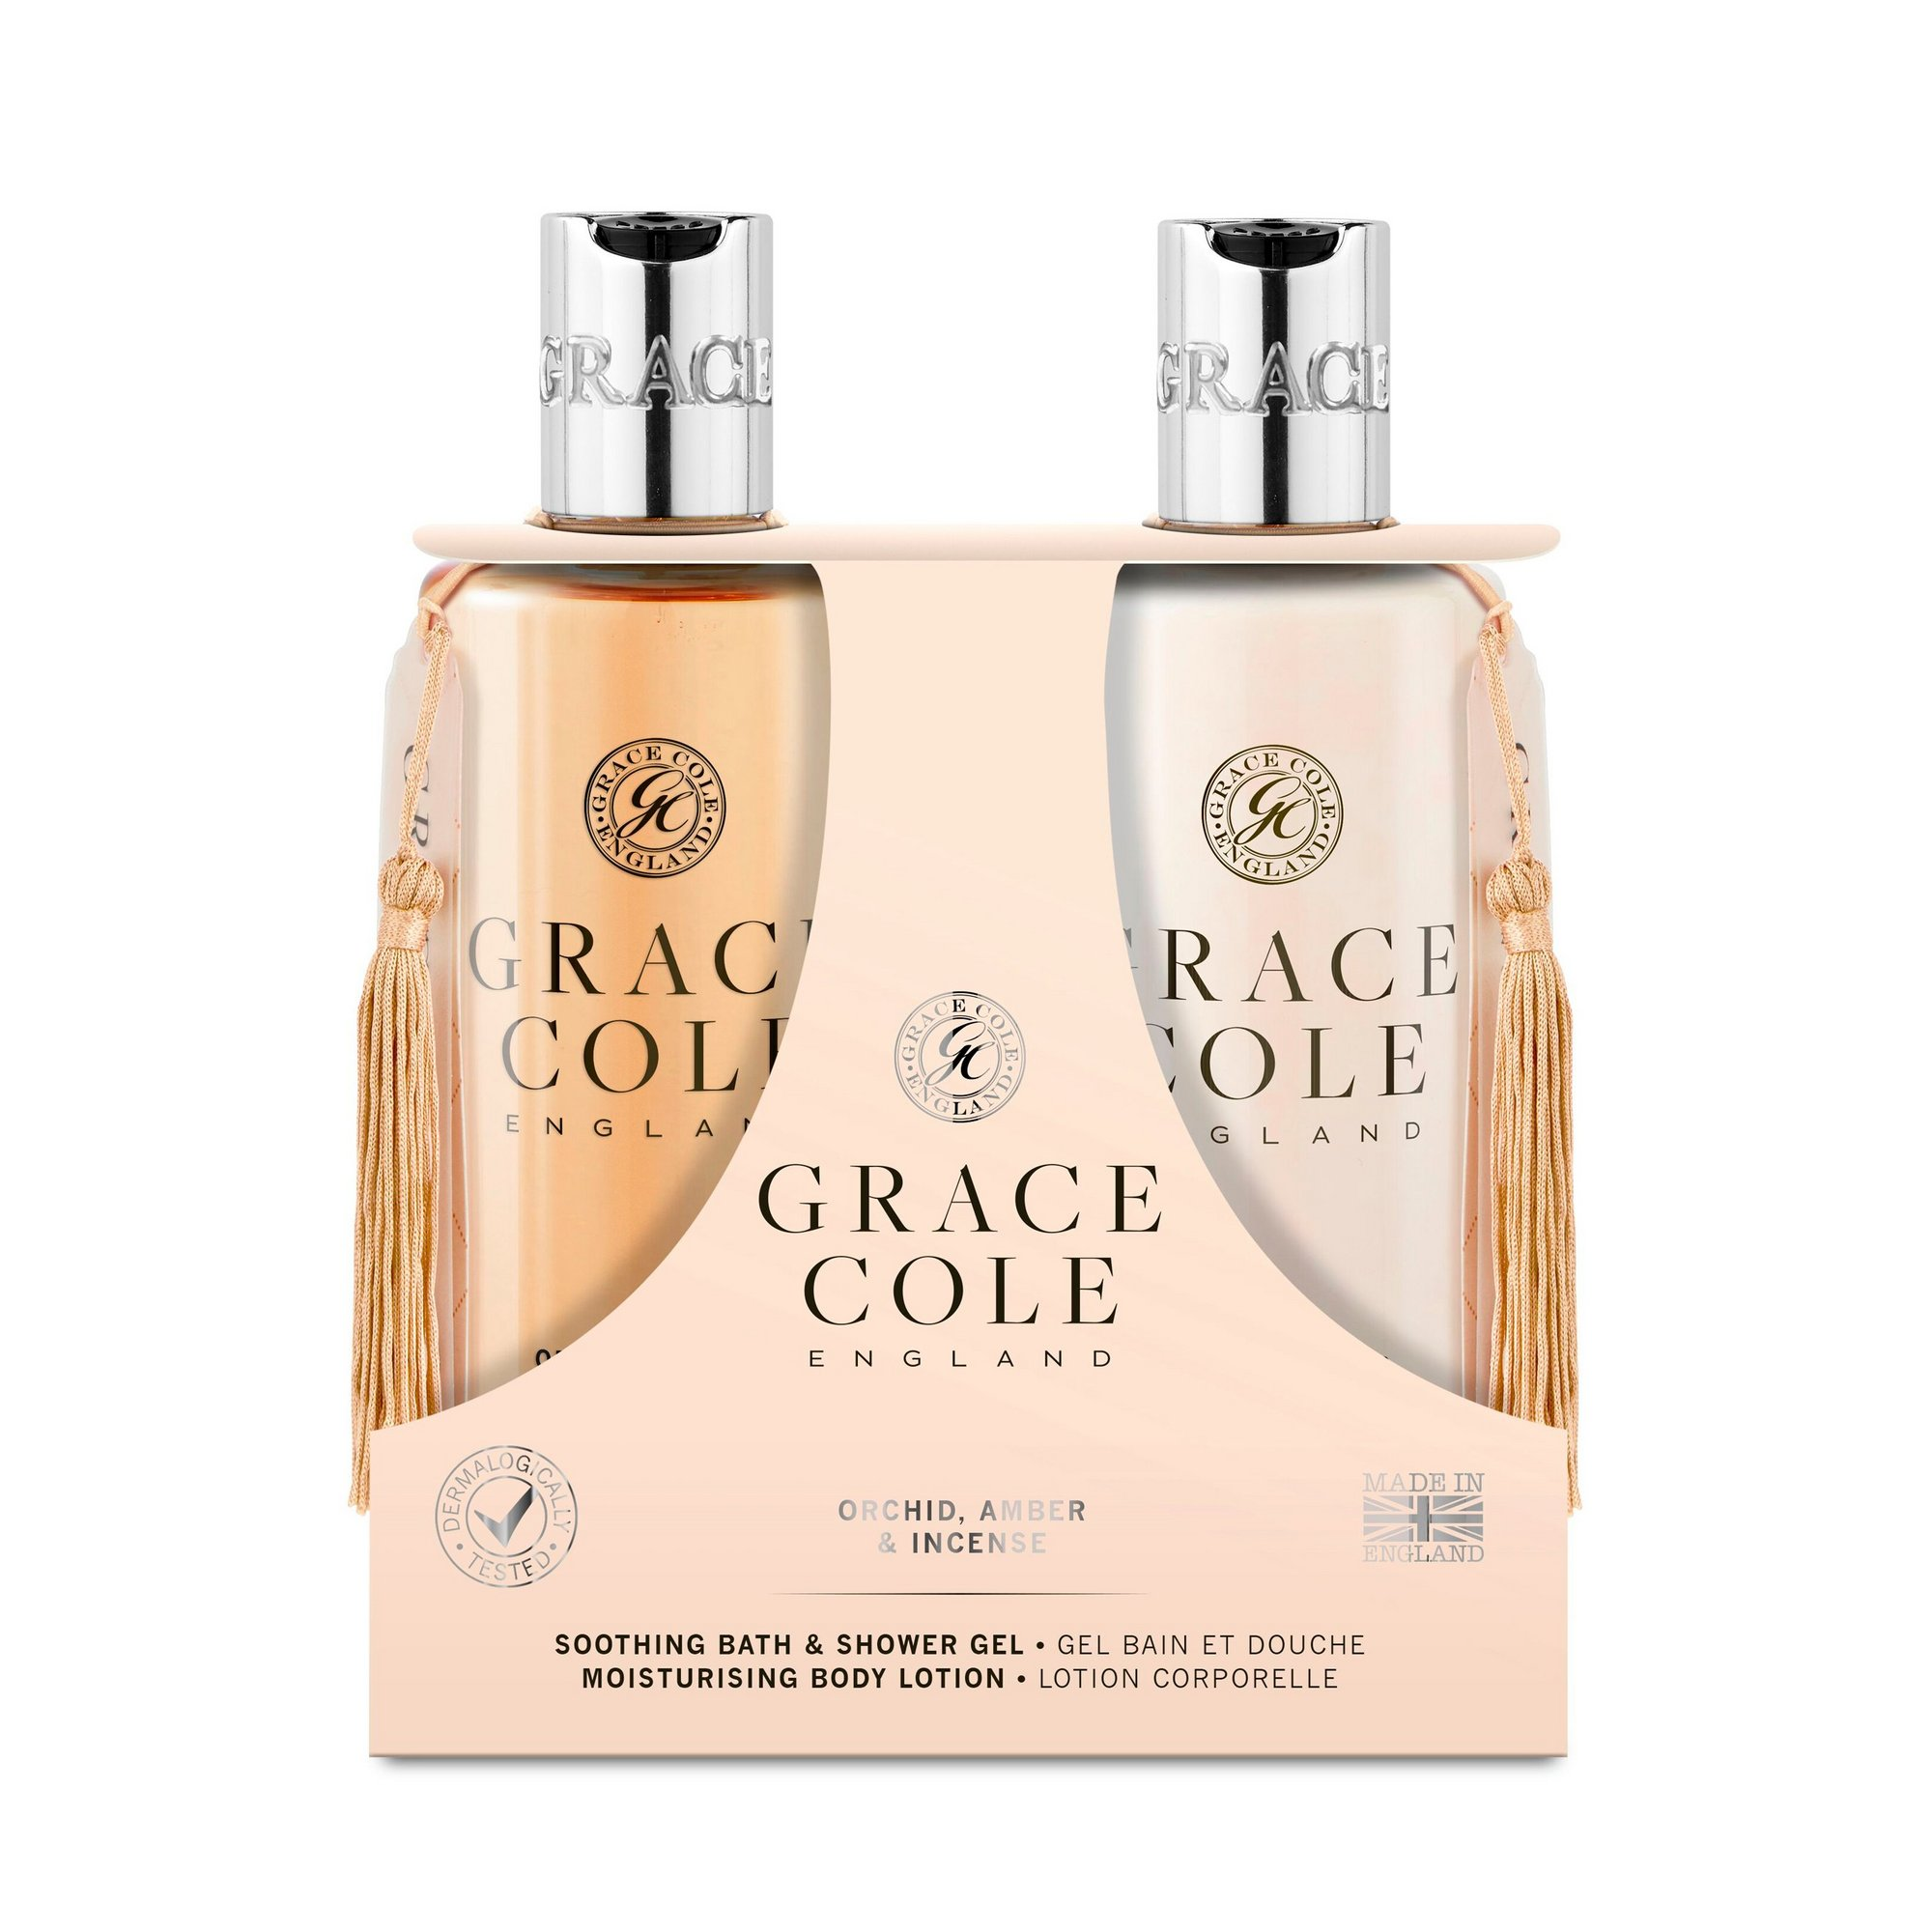 Image of Grace Cole Body Care Orchid + Amber and Incense Duo Pack